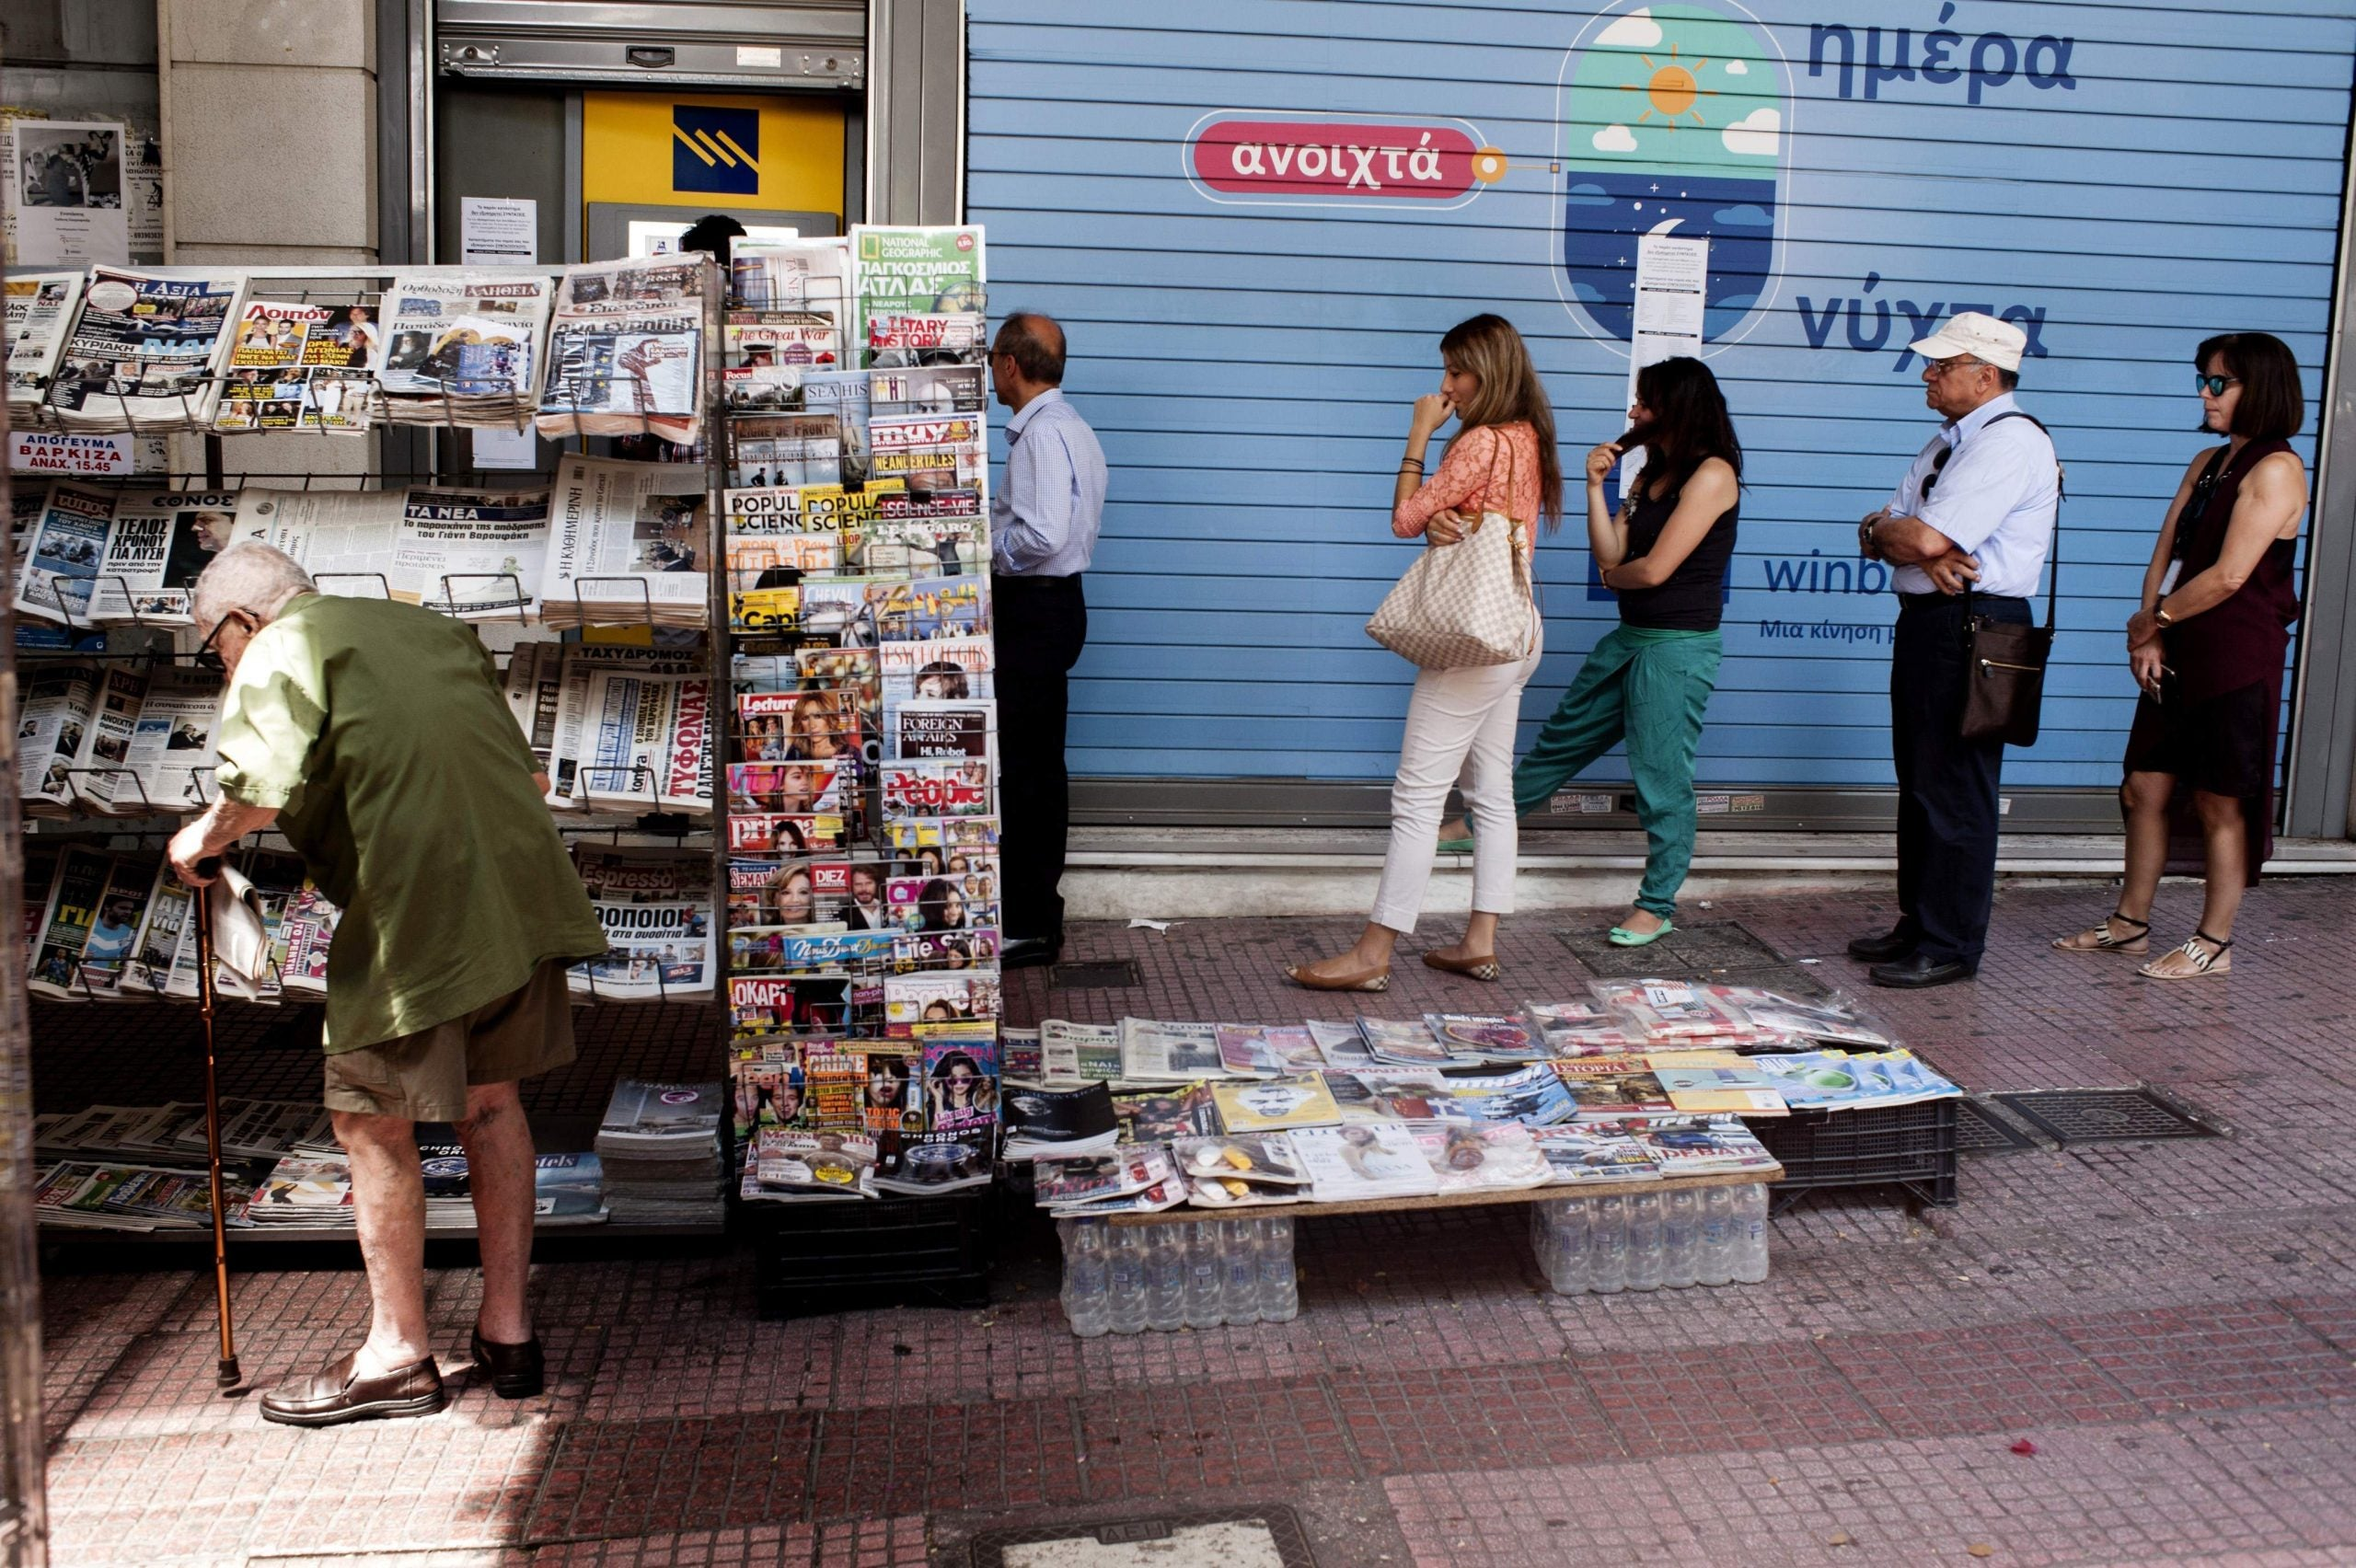 From taxi drivers to surgeons, everyone in Greece is now an expert on the country's debt